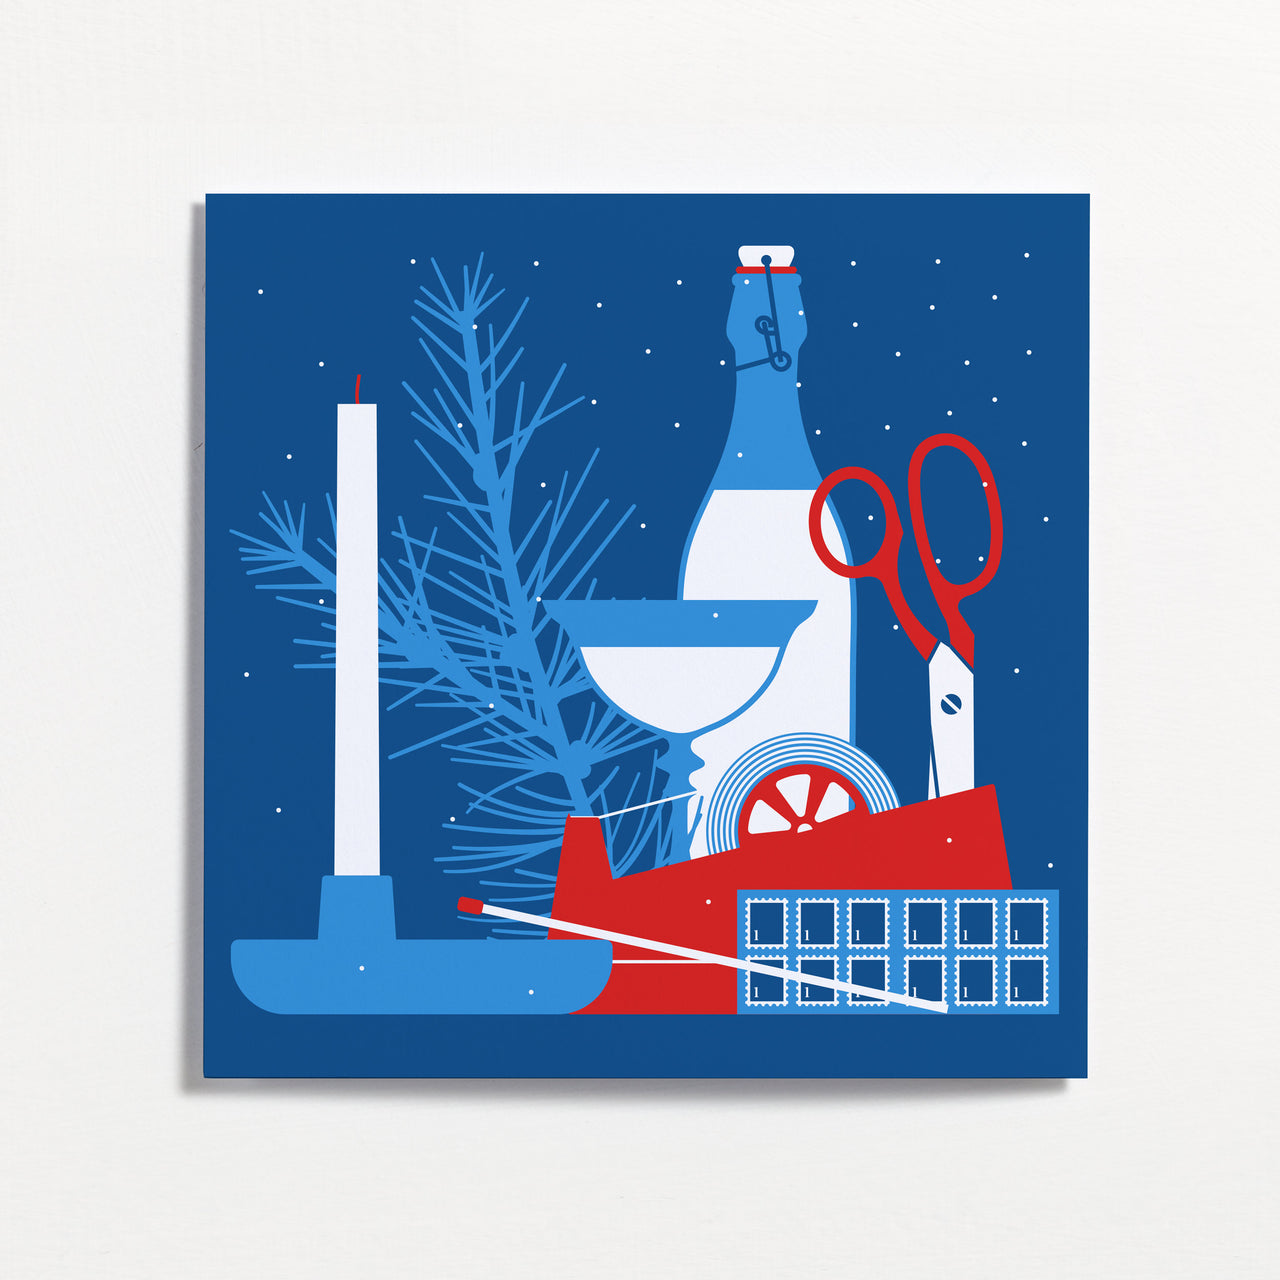 Candle Stick Winter Frieze Christmas Card by Crispin Finn